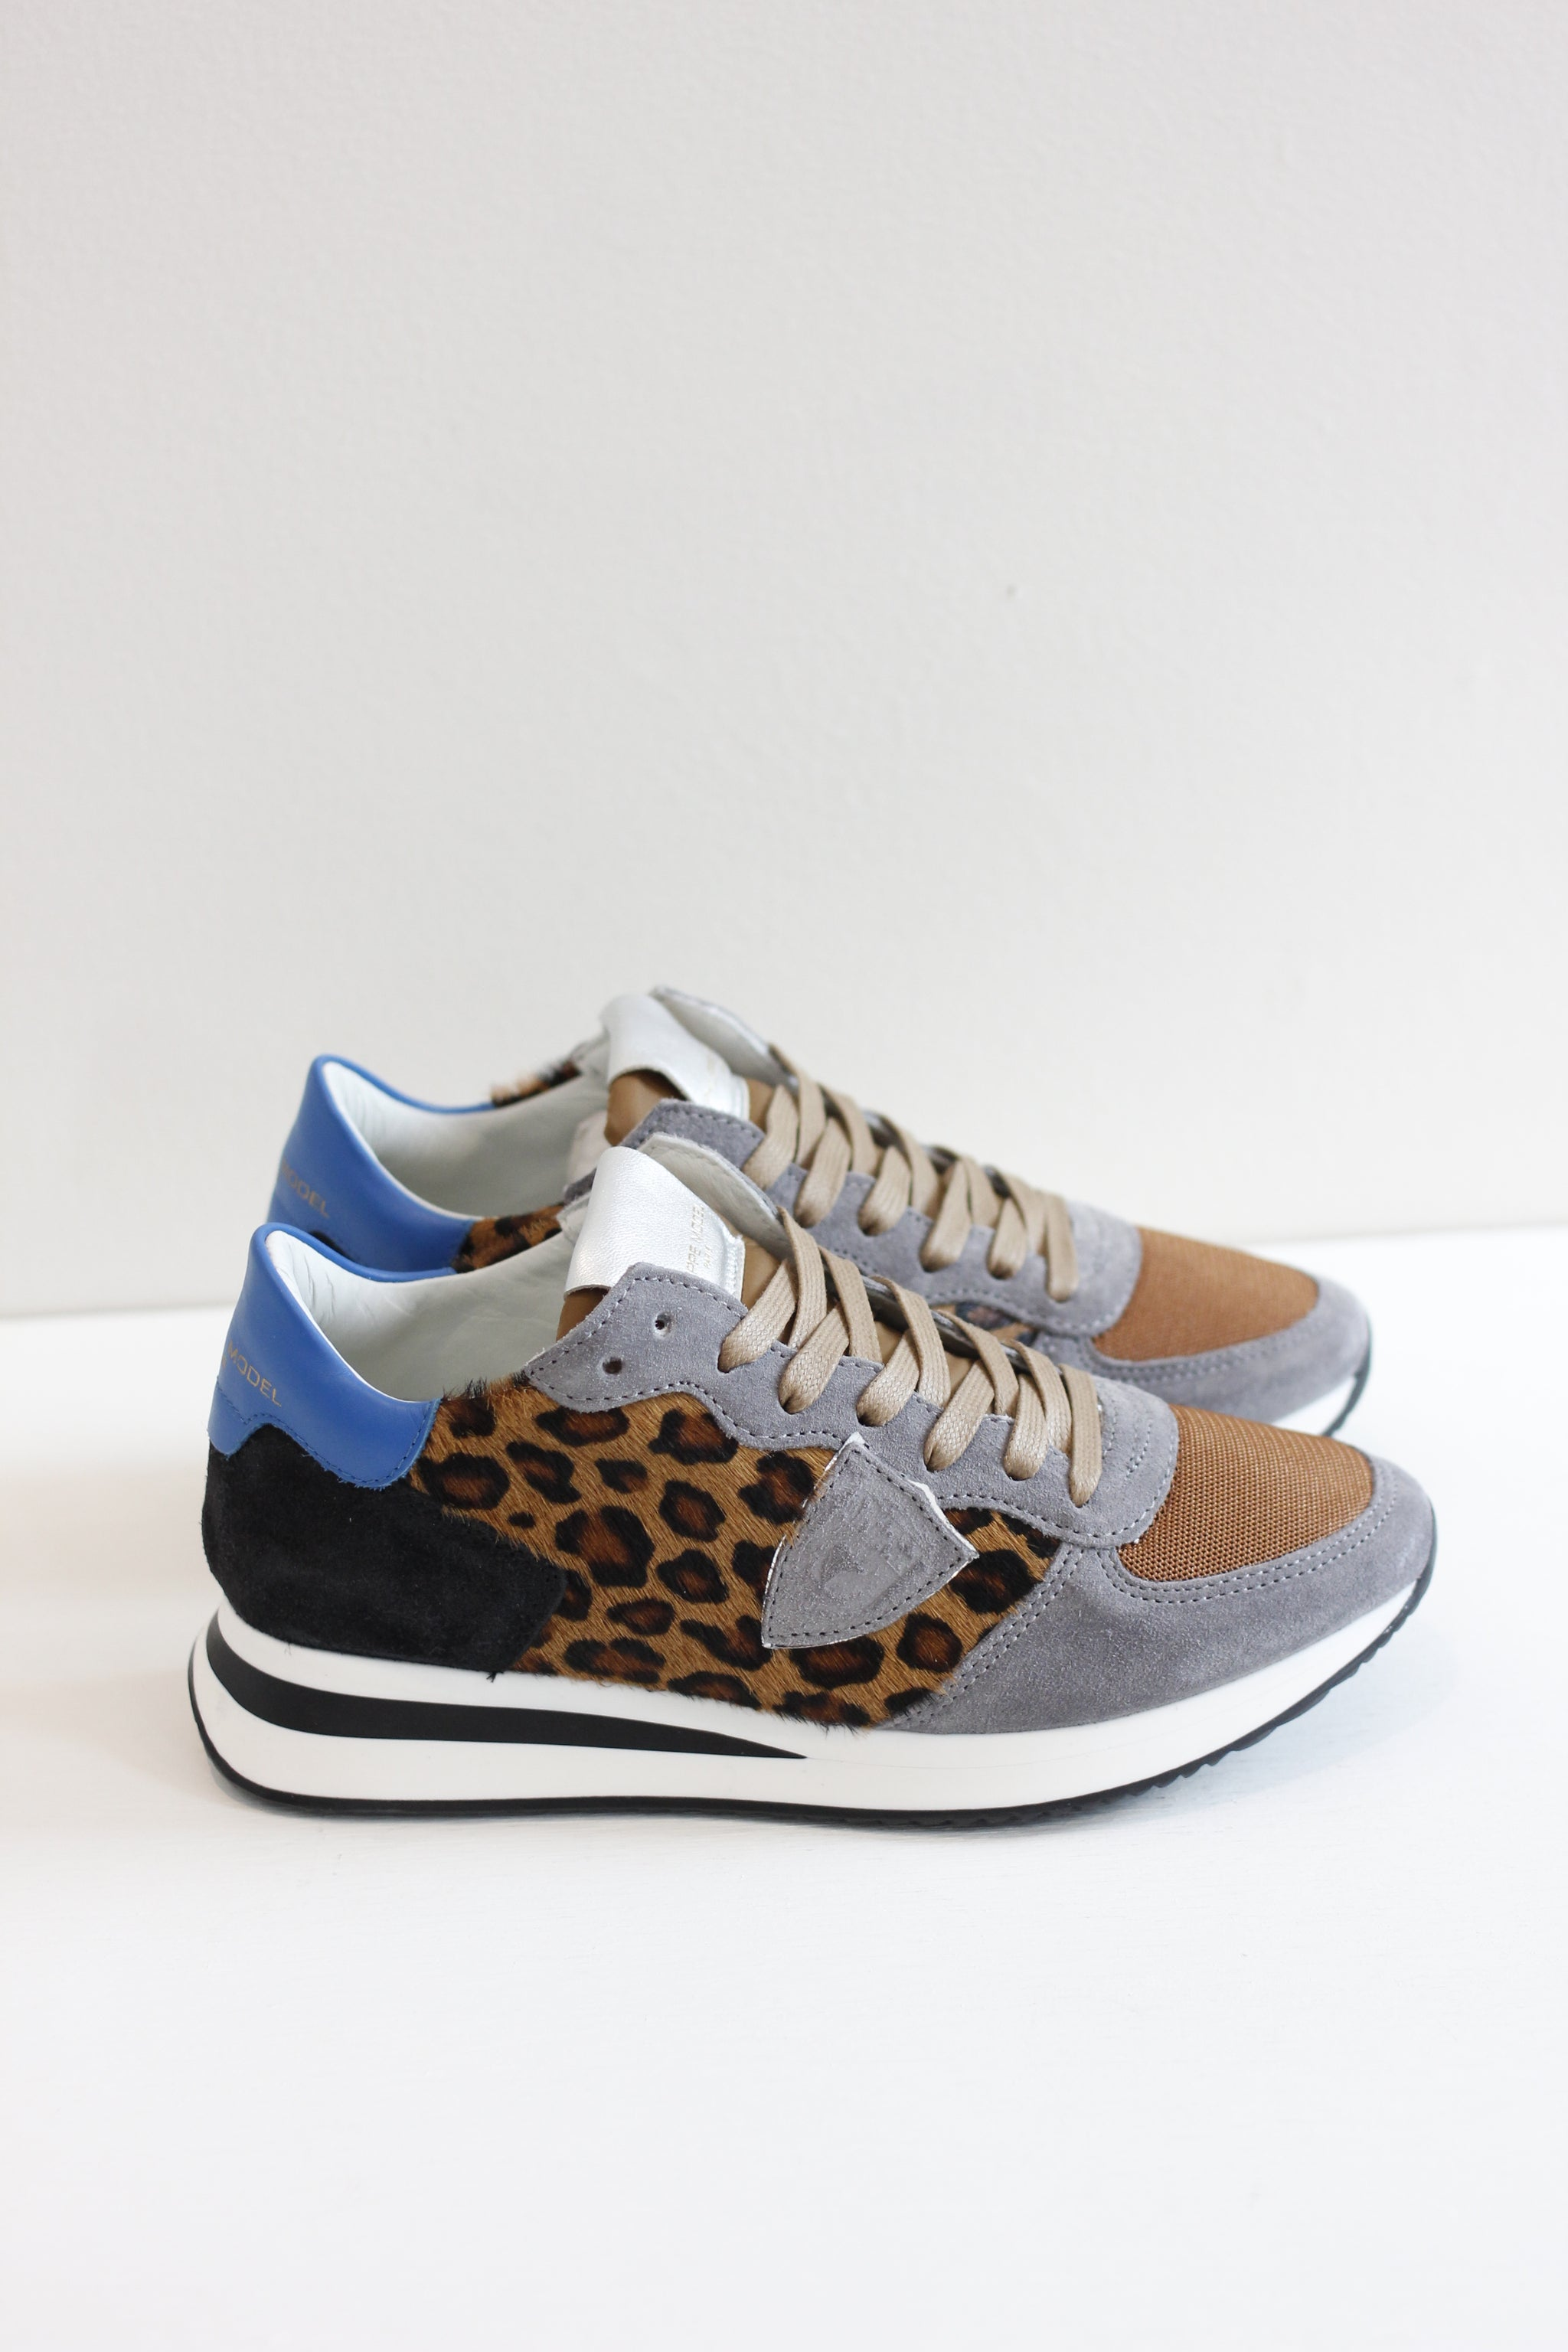 Stylish Italian sneaker with animal print